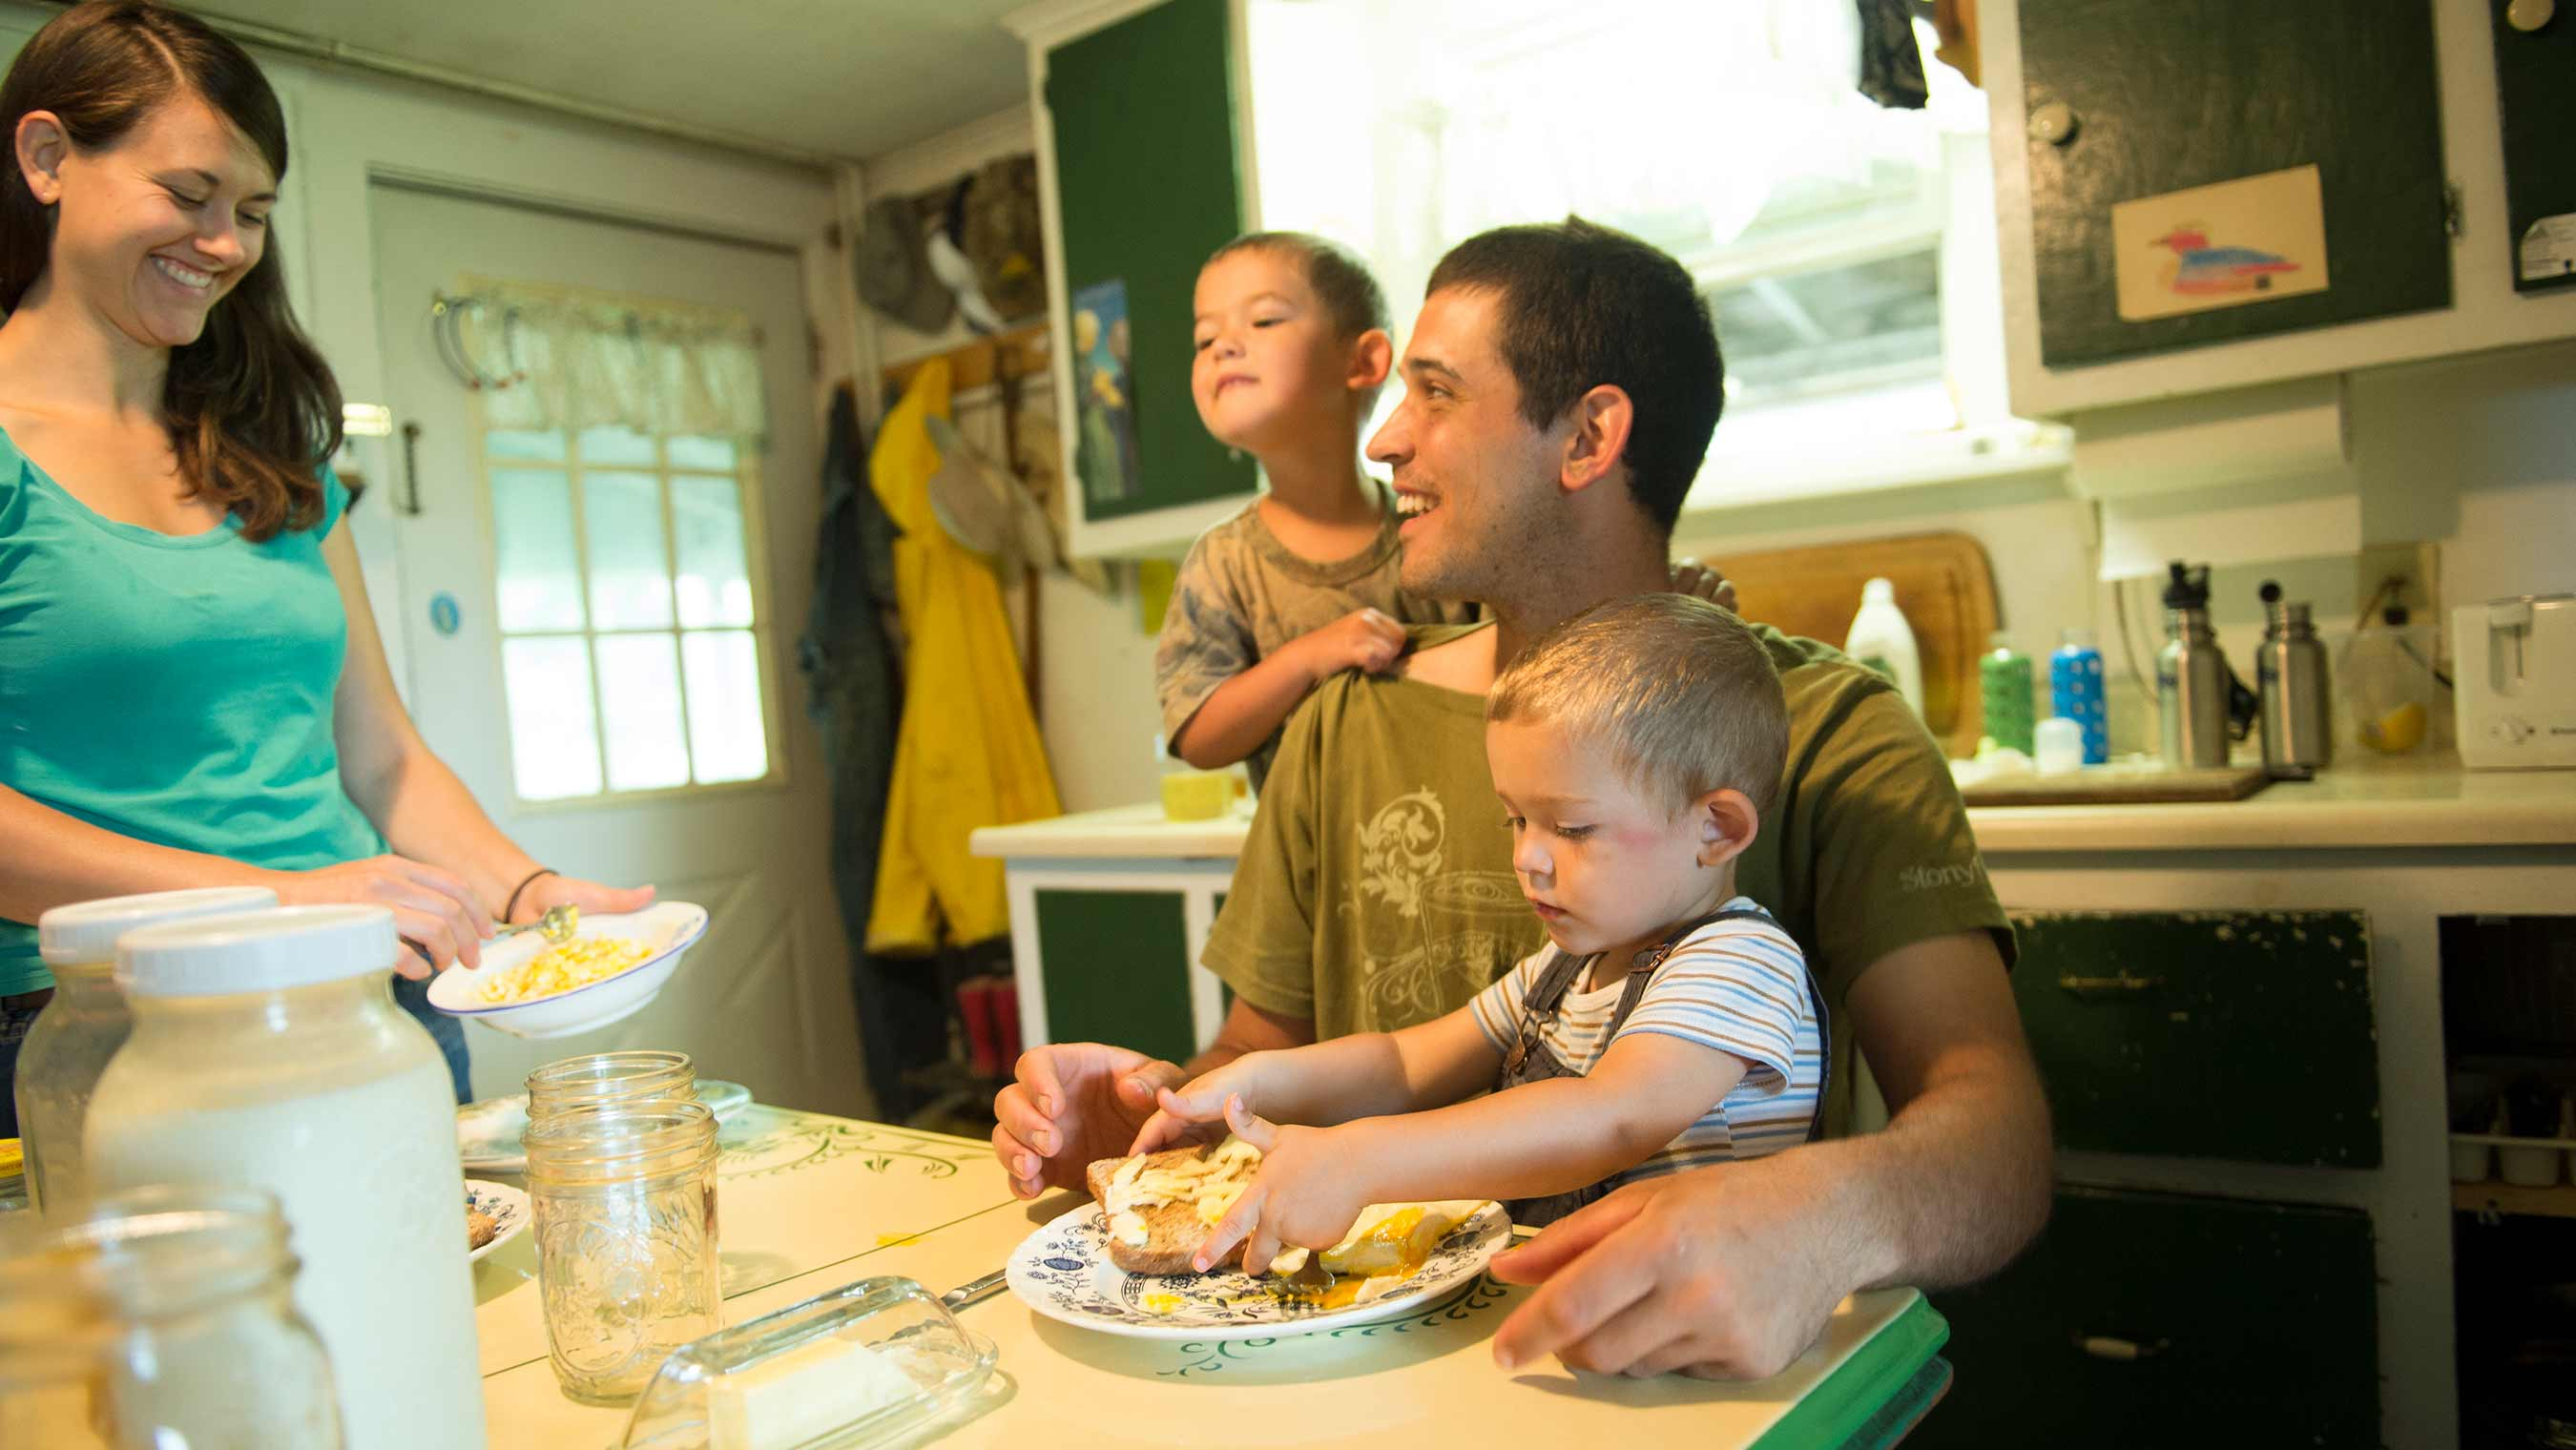 Emily Donegan serves her family a homemade meal in their kitchen.